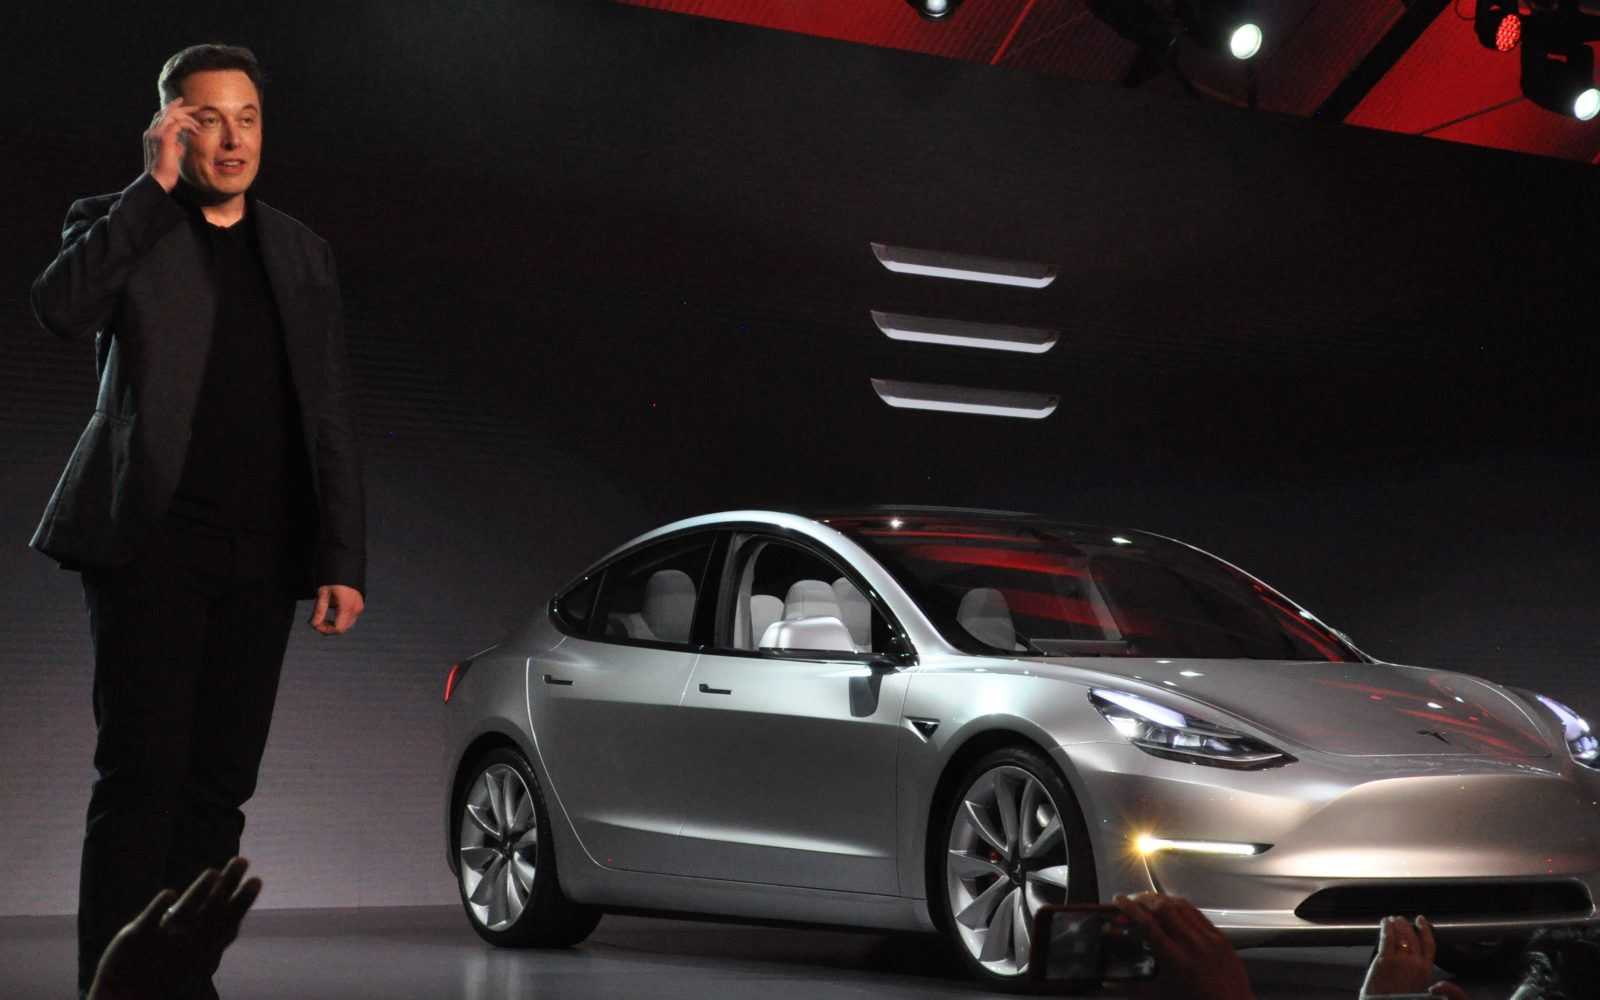 Tesla Model 3 will give 'superhuman' safety to driver and be '10x safer than current cars', says Tesla analyst Adam Jonas